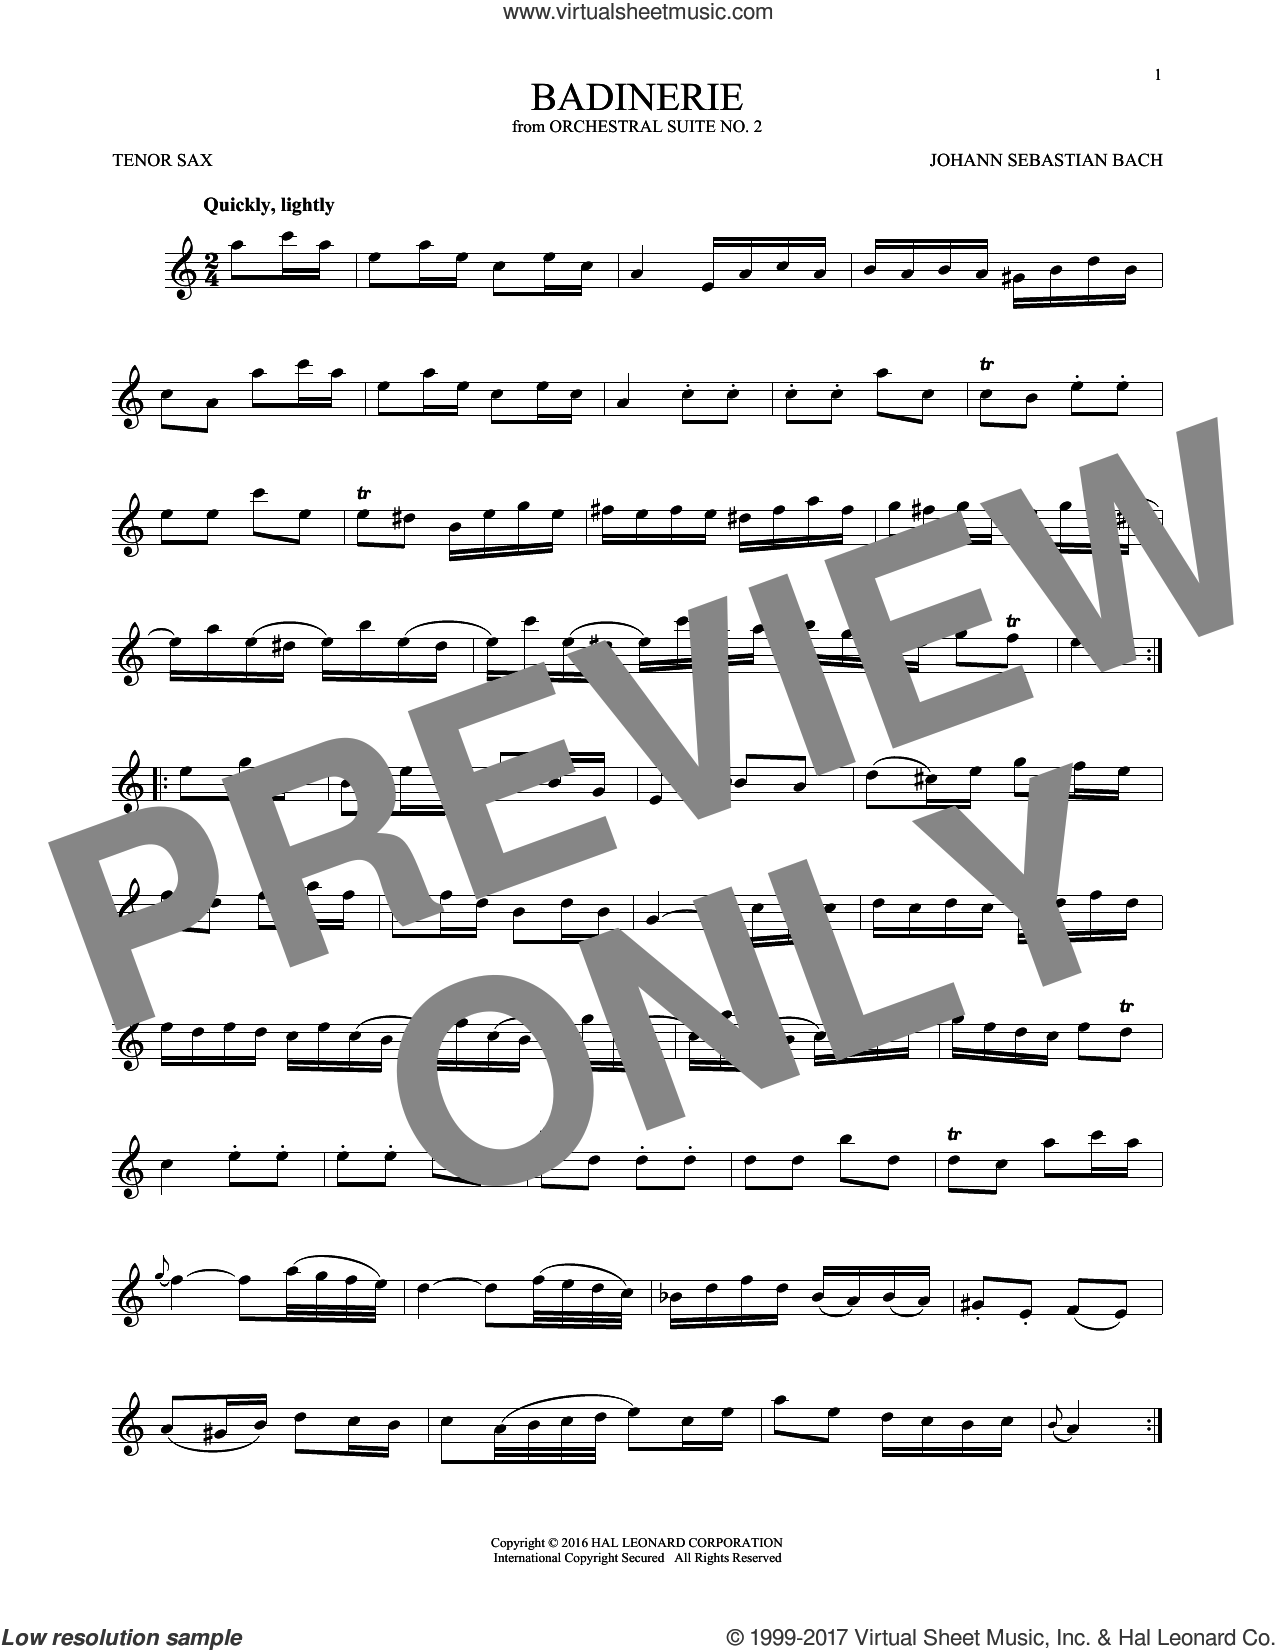 Badinerie (Suite No. 2) sheet music for tenor saxophone solo by Johann Sebastian Bach, classical score, intermediate skill level